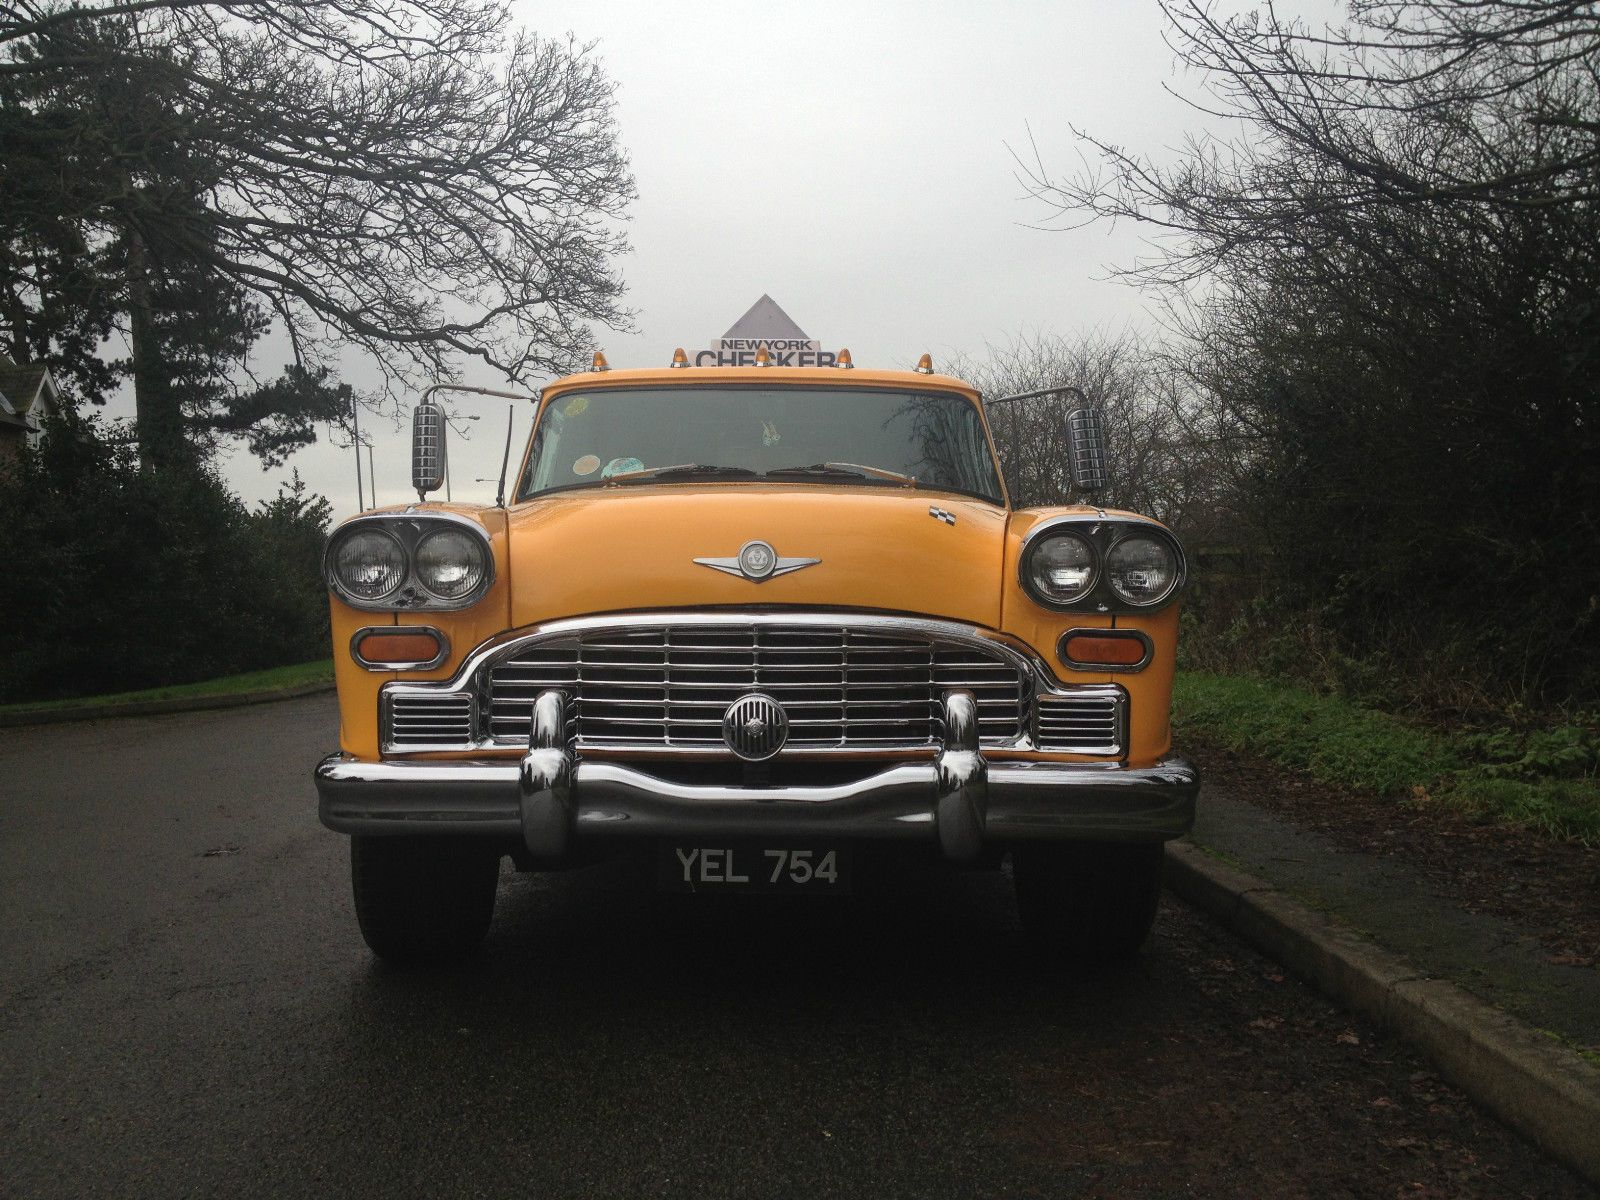 Limo Limousine 1964 Checker Aerobus New York Checker Cab Limo Only One In Uk Ebay